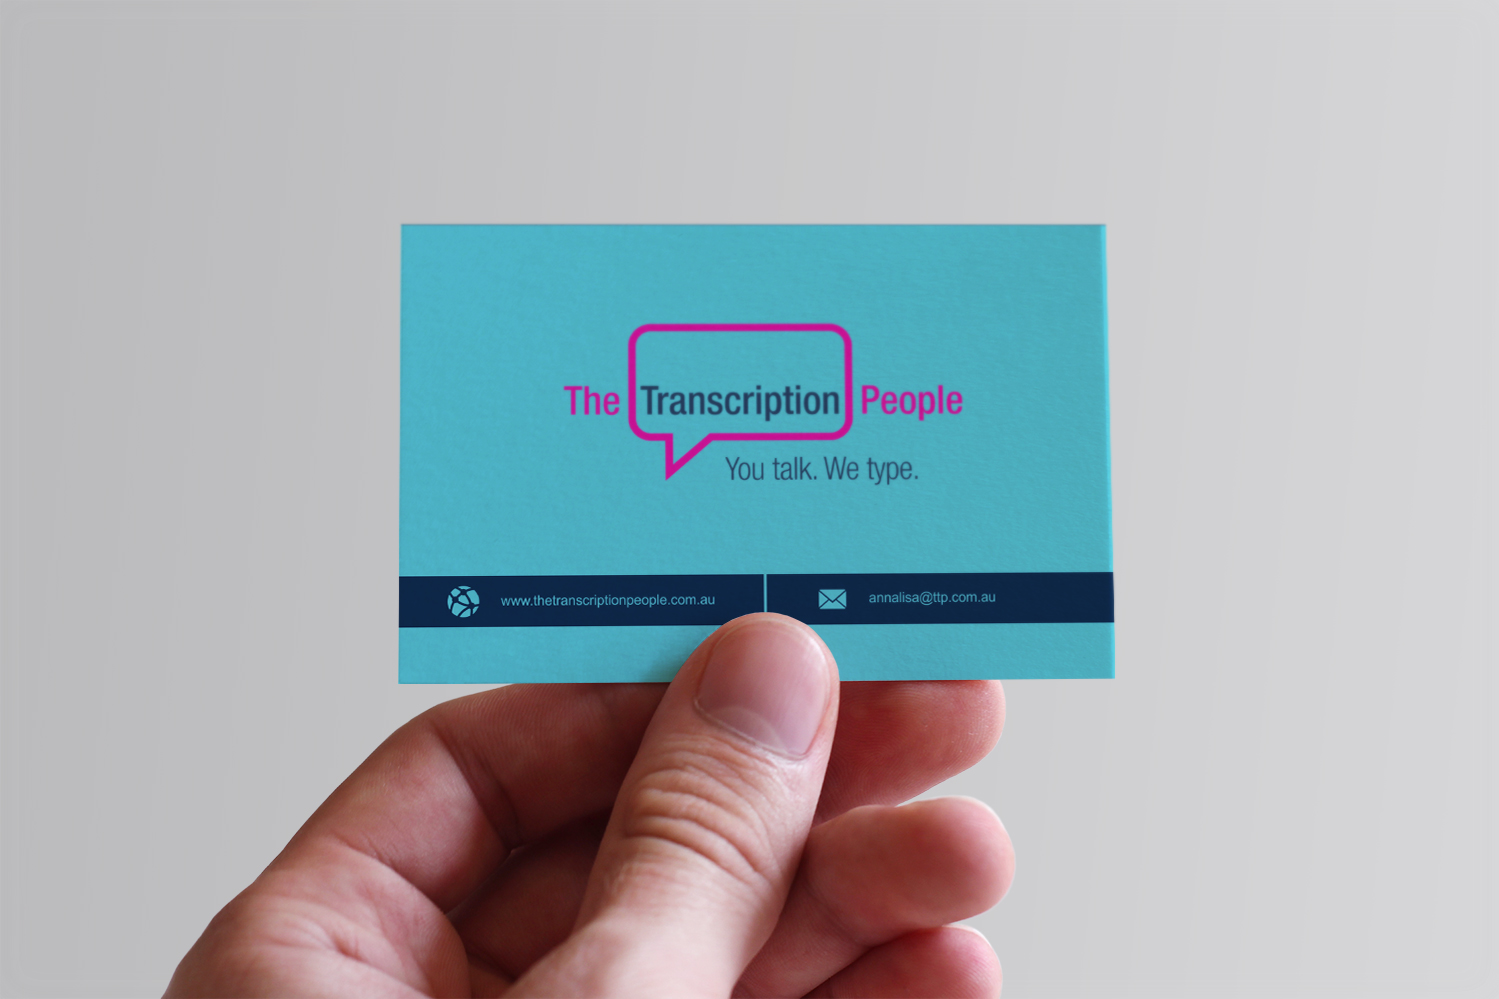 Business business card design for the transcription people pty ltd business business card design for the transcription people pty ltd in australia design 9784550 colourmoves